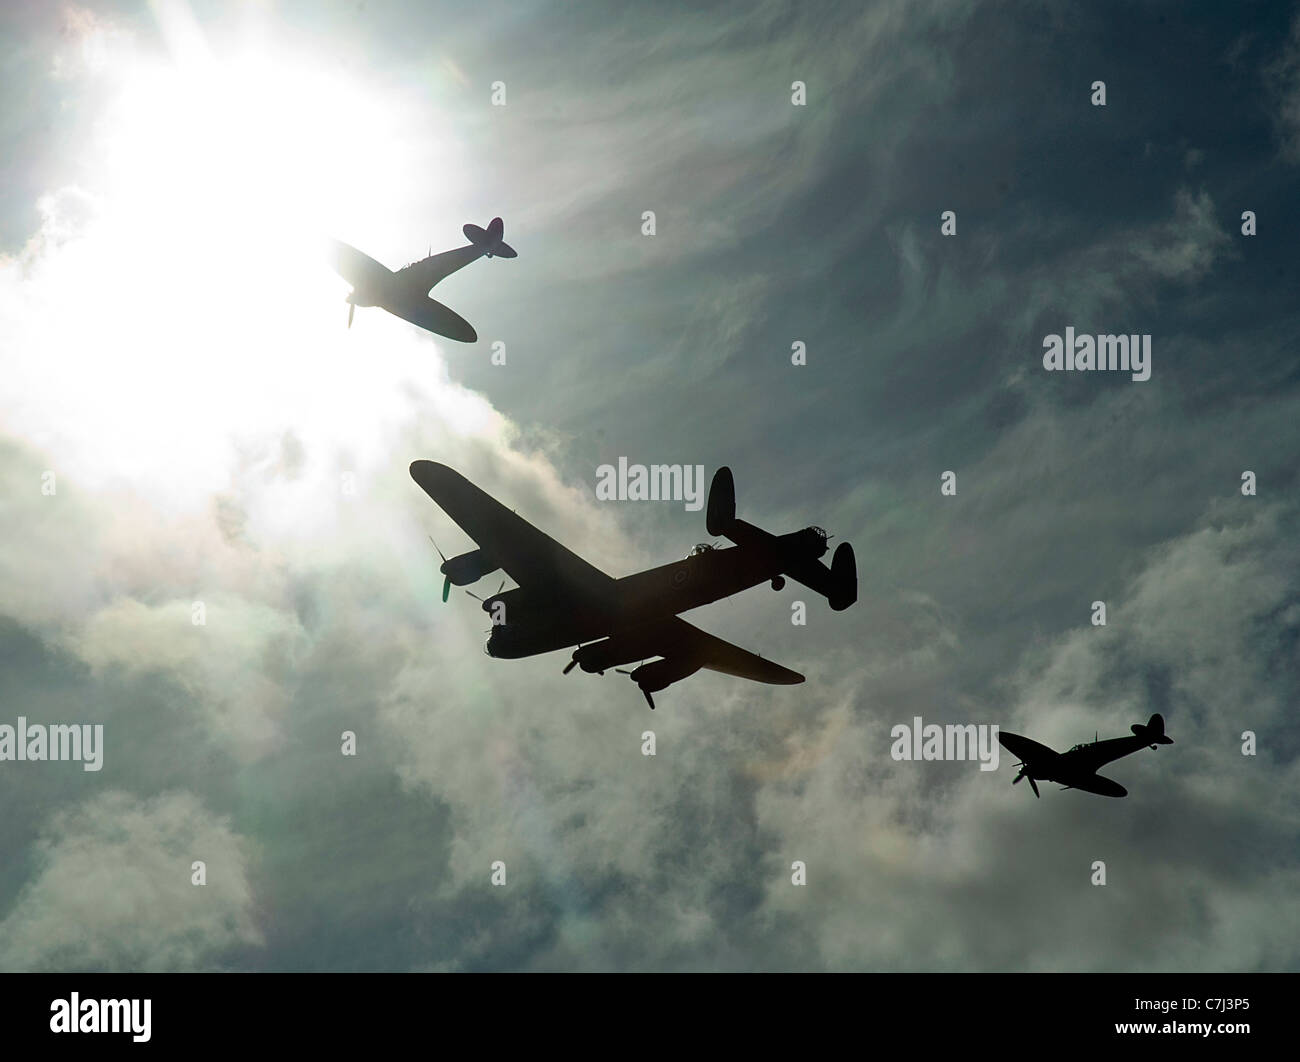 Lancaster Bomber and Spitfire Fighter Planes at 2011 Goodwood Revival - Stock Image